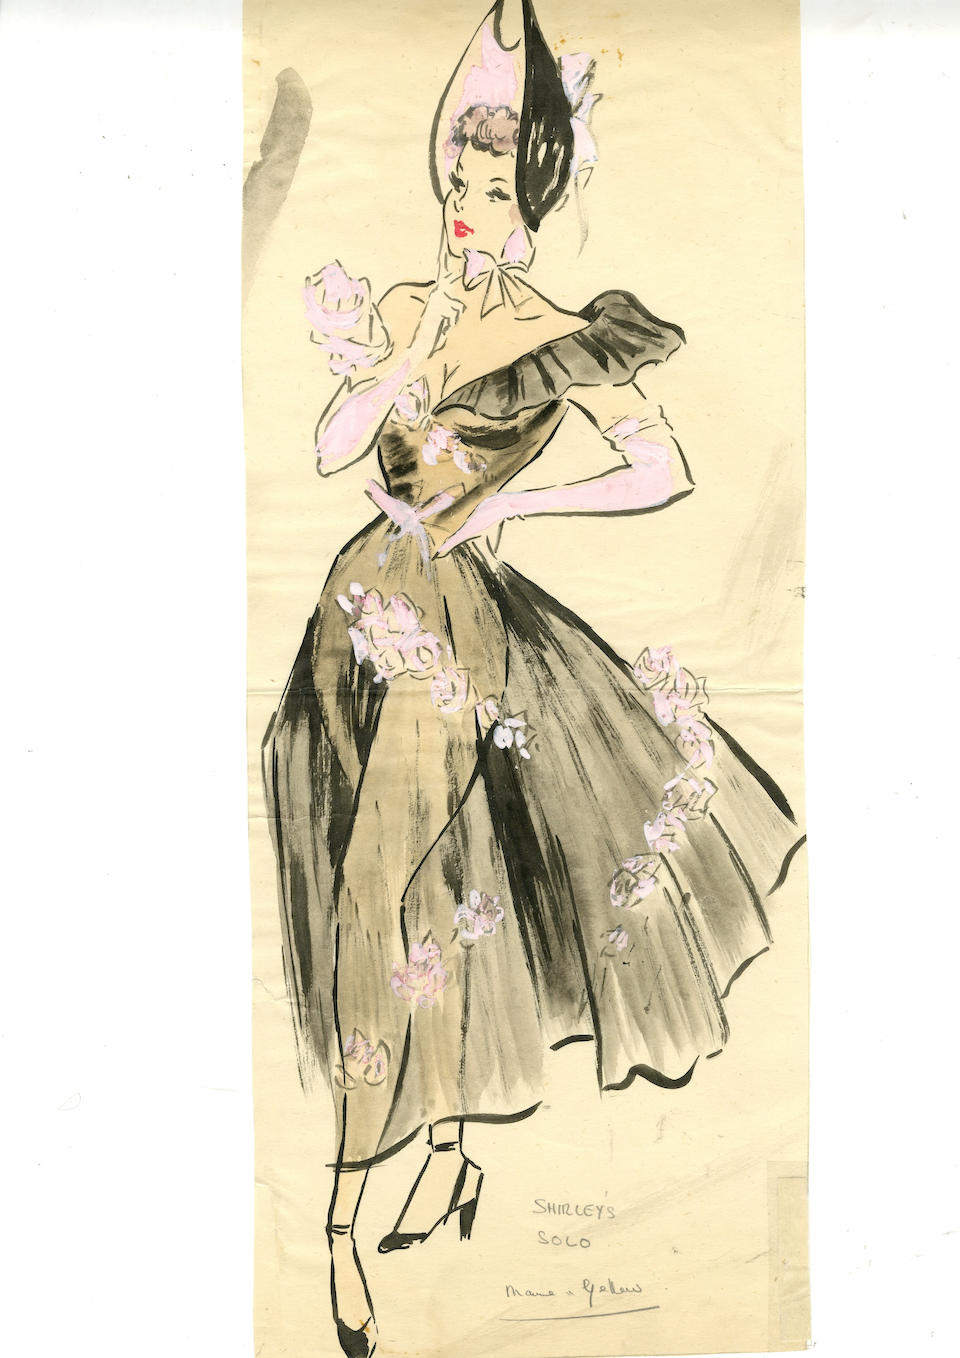 Ronald Cobb (British, 1907-1977): A large original costume design of a Murray's Cabaret Club showgirl in a black dress and hat, 1950's,